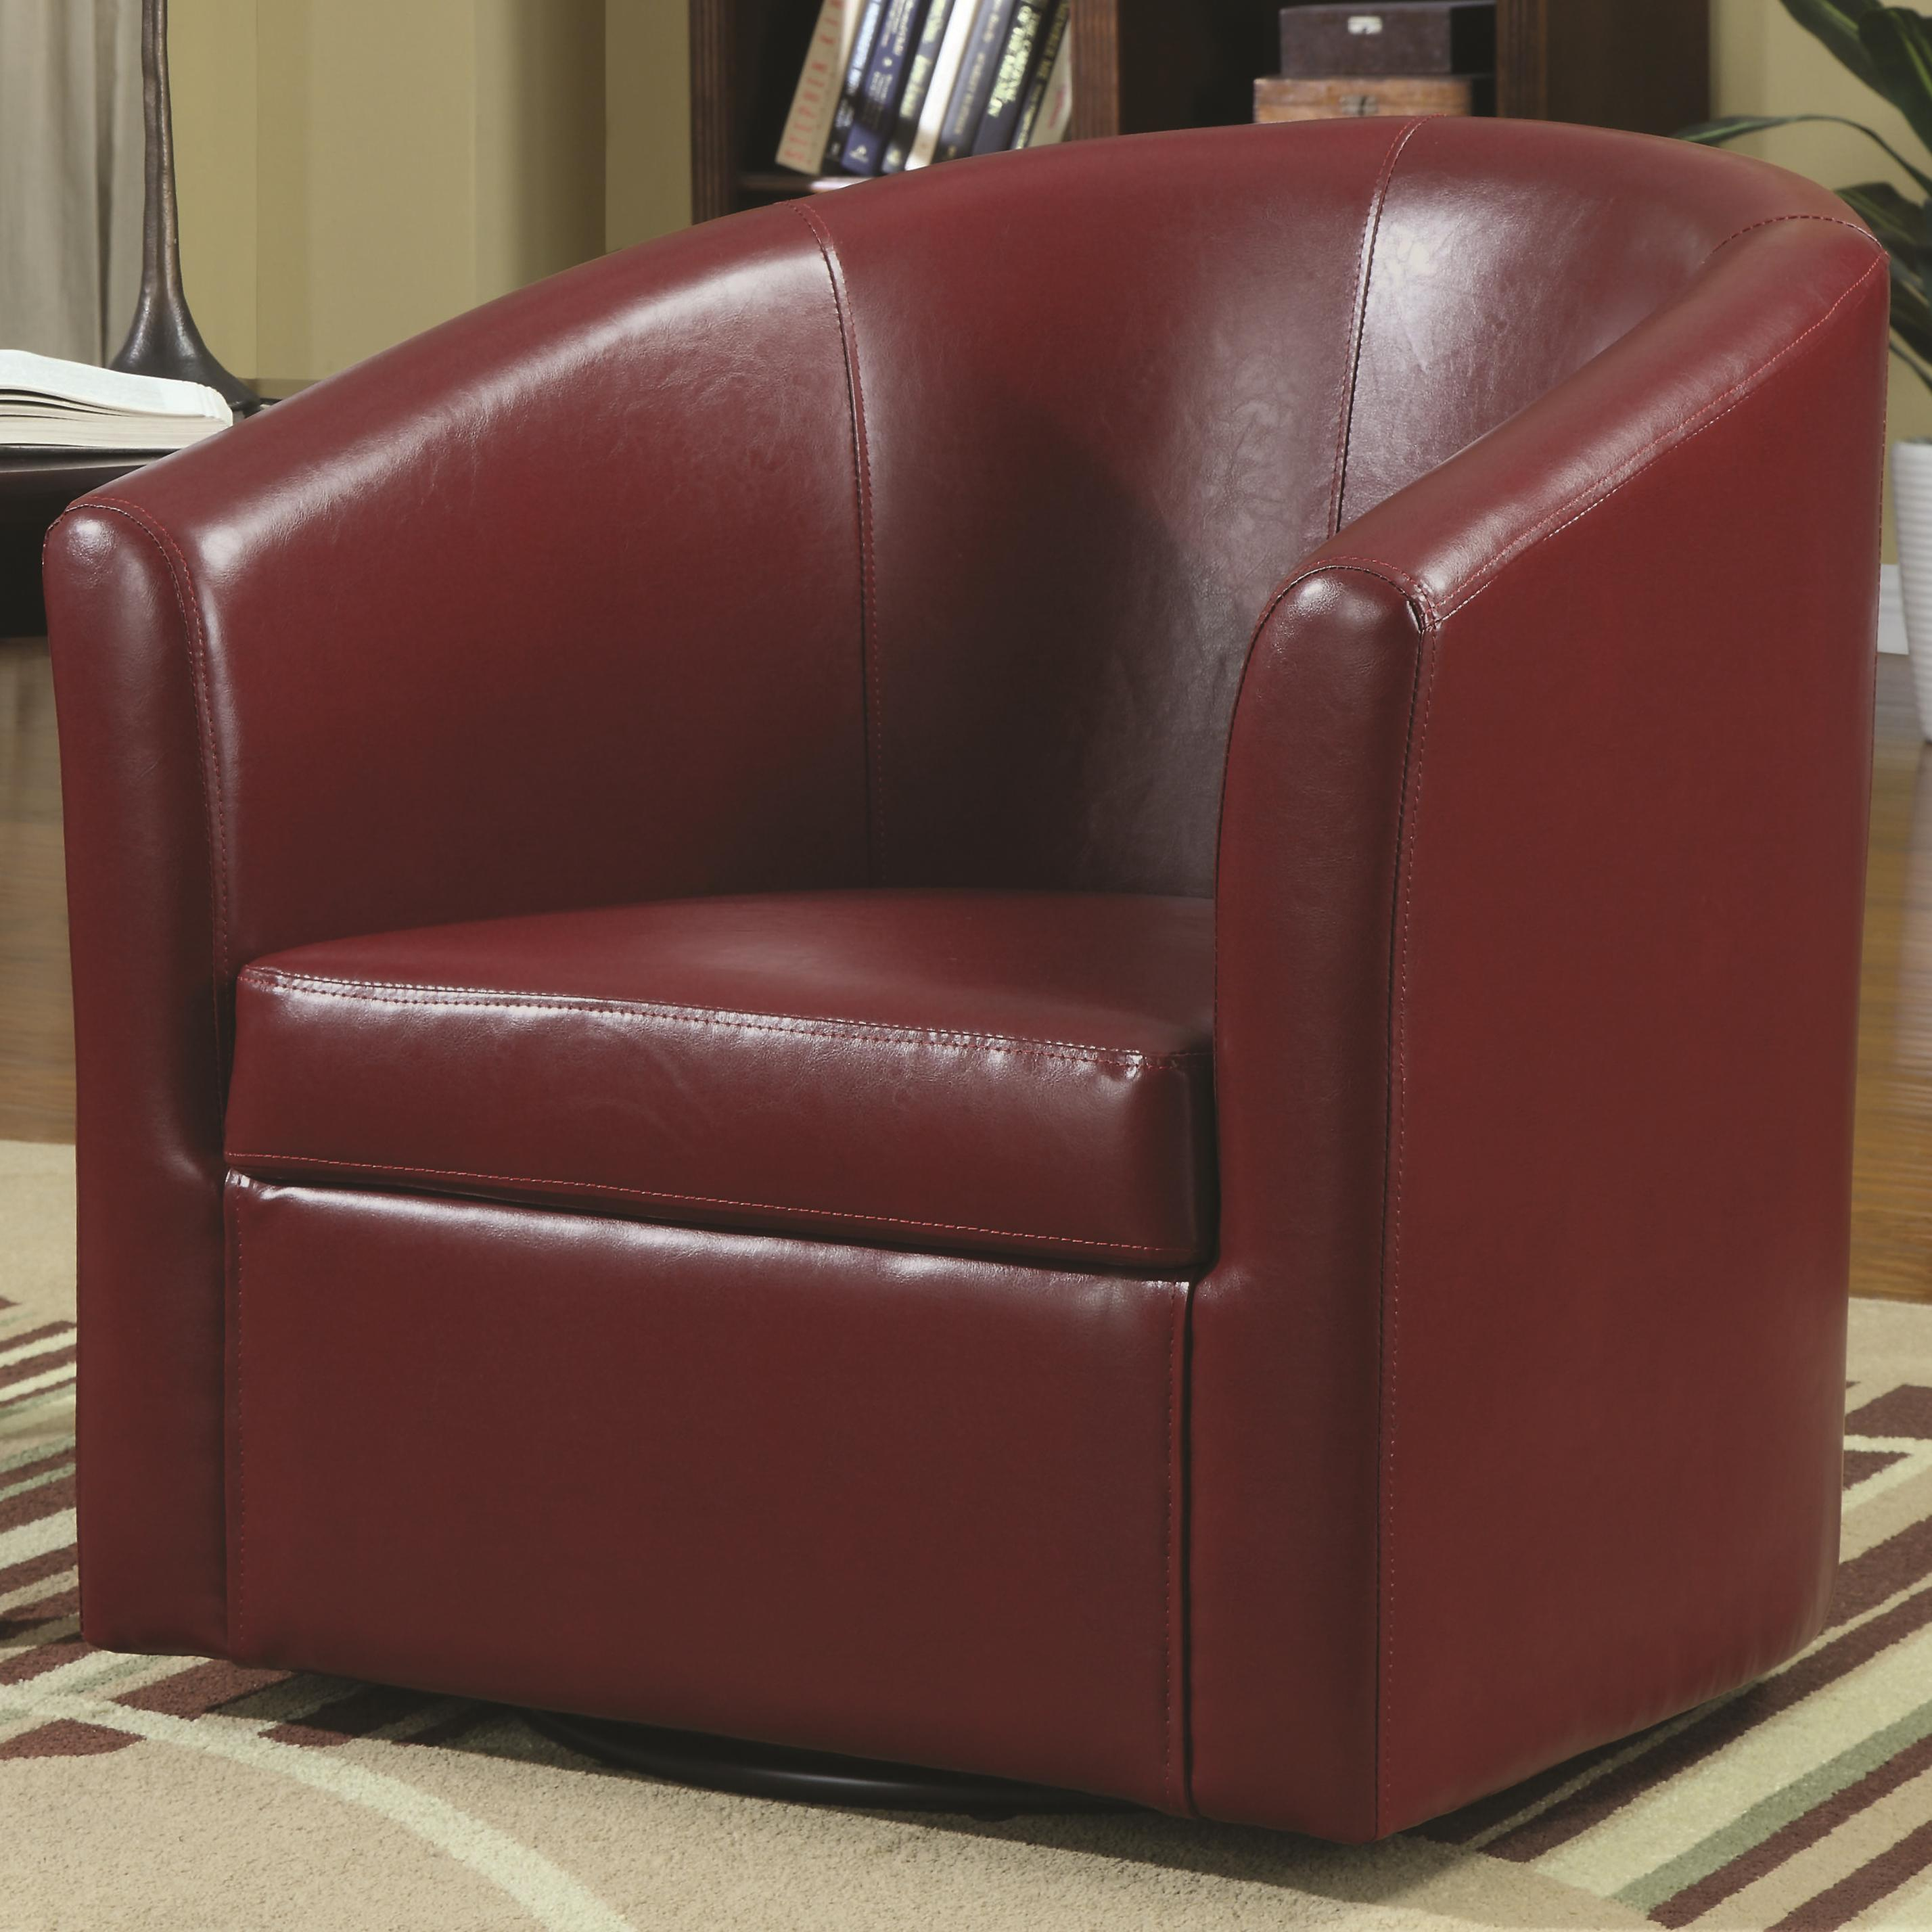 Contemporary Seating Accent Seating Contemporary Styled Accent Swivel Chair By Coaster At Prime Brothers Furniture